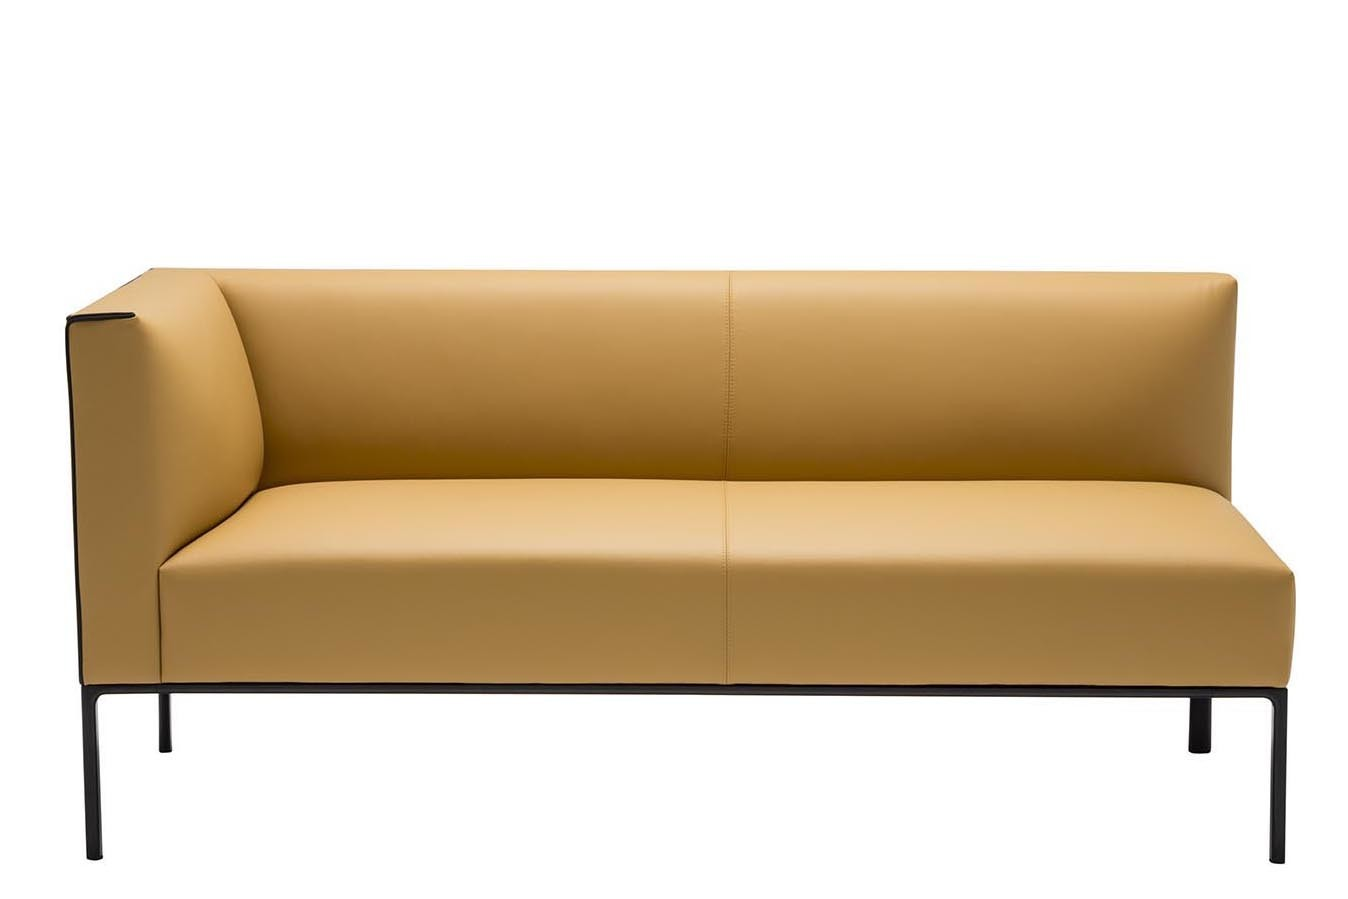 Raglan 3 Seater Corner Sofa Right, Polished Chrome Aluminium, Andreu World Silk, Plastic with Felt